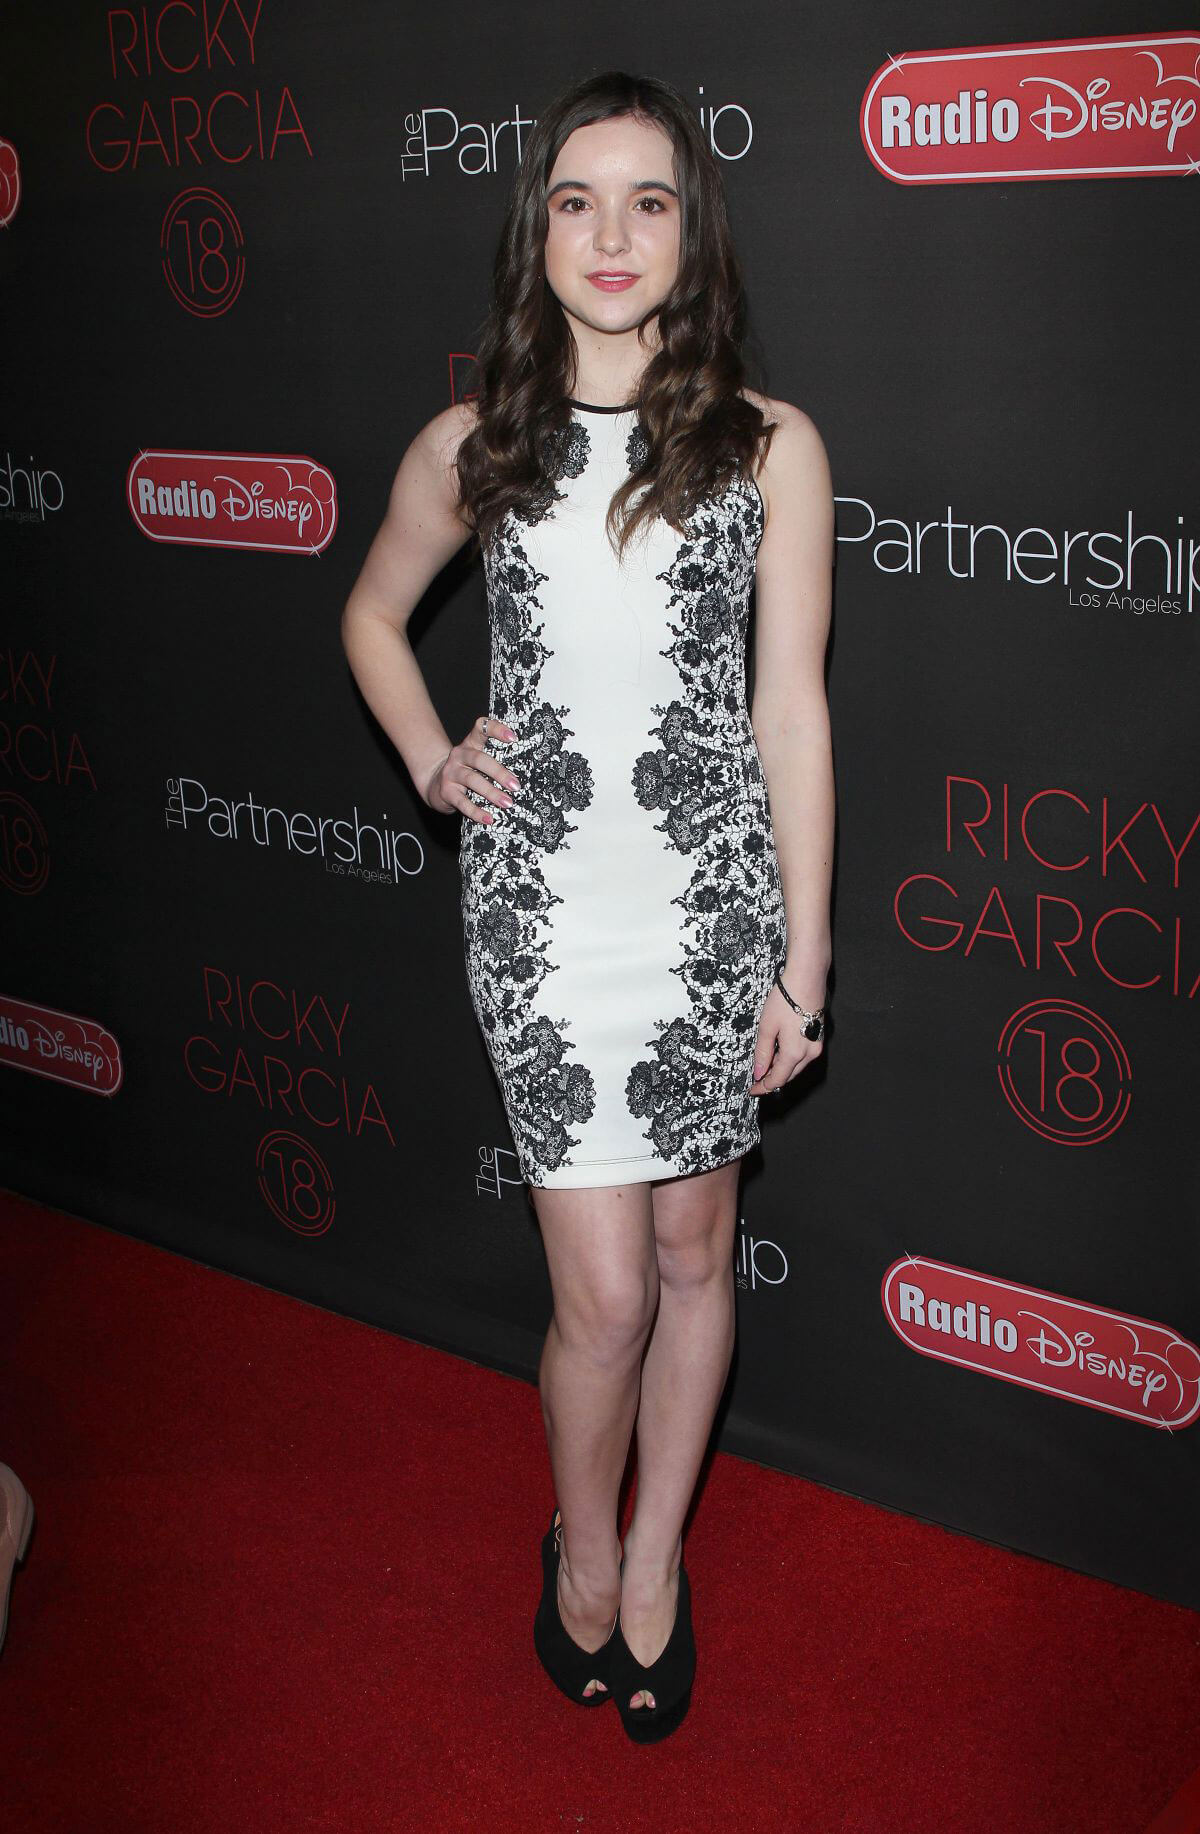 Aubrey Miller at Ricky Garcia's 18th Birthday Bash in Los Angeles